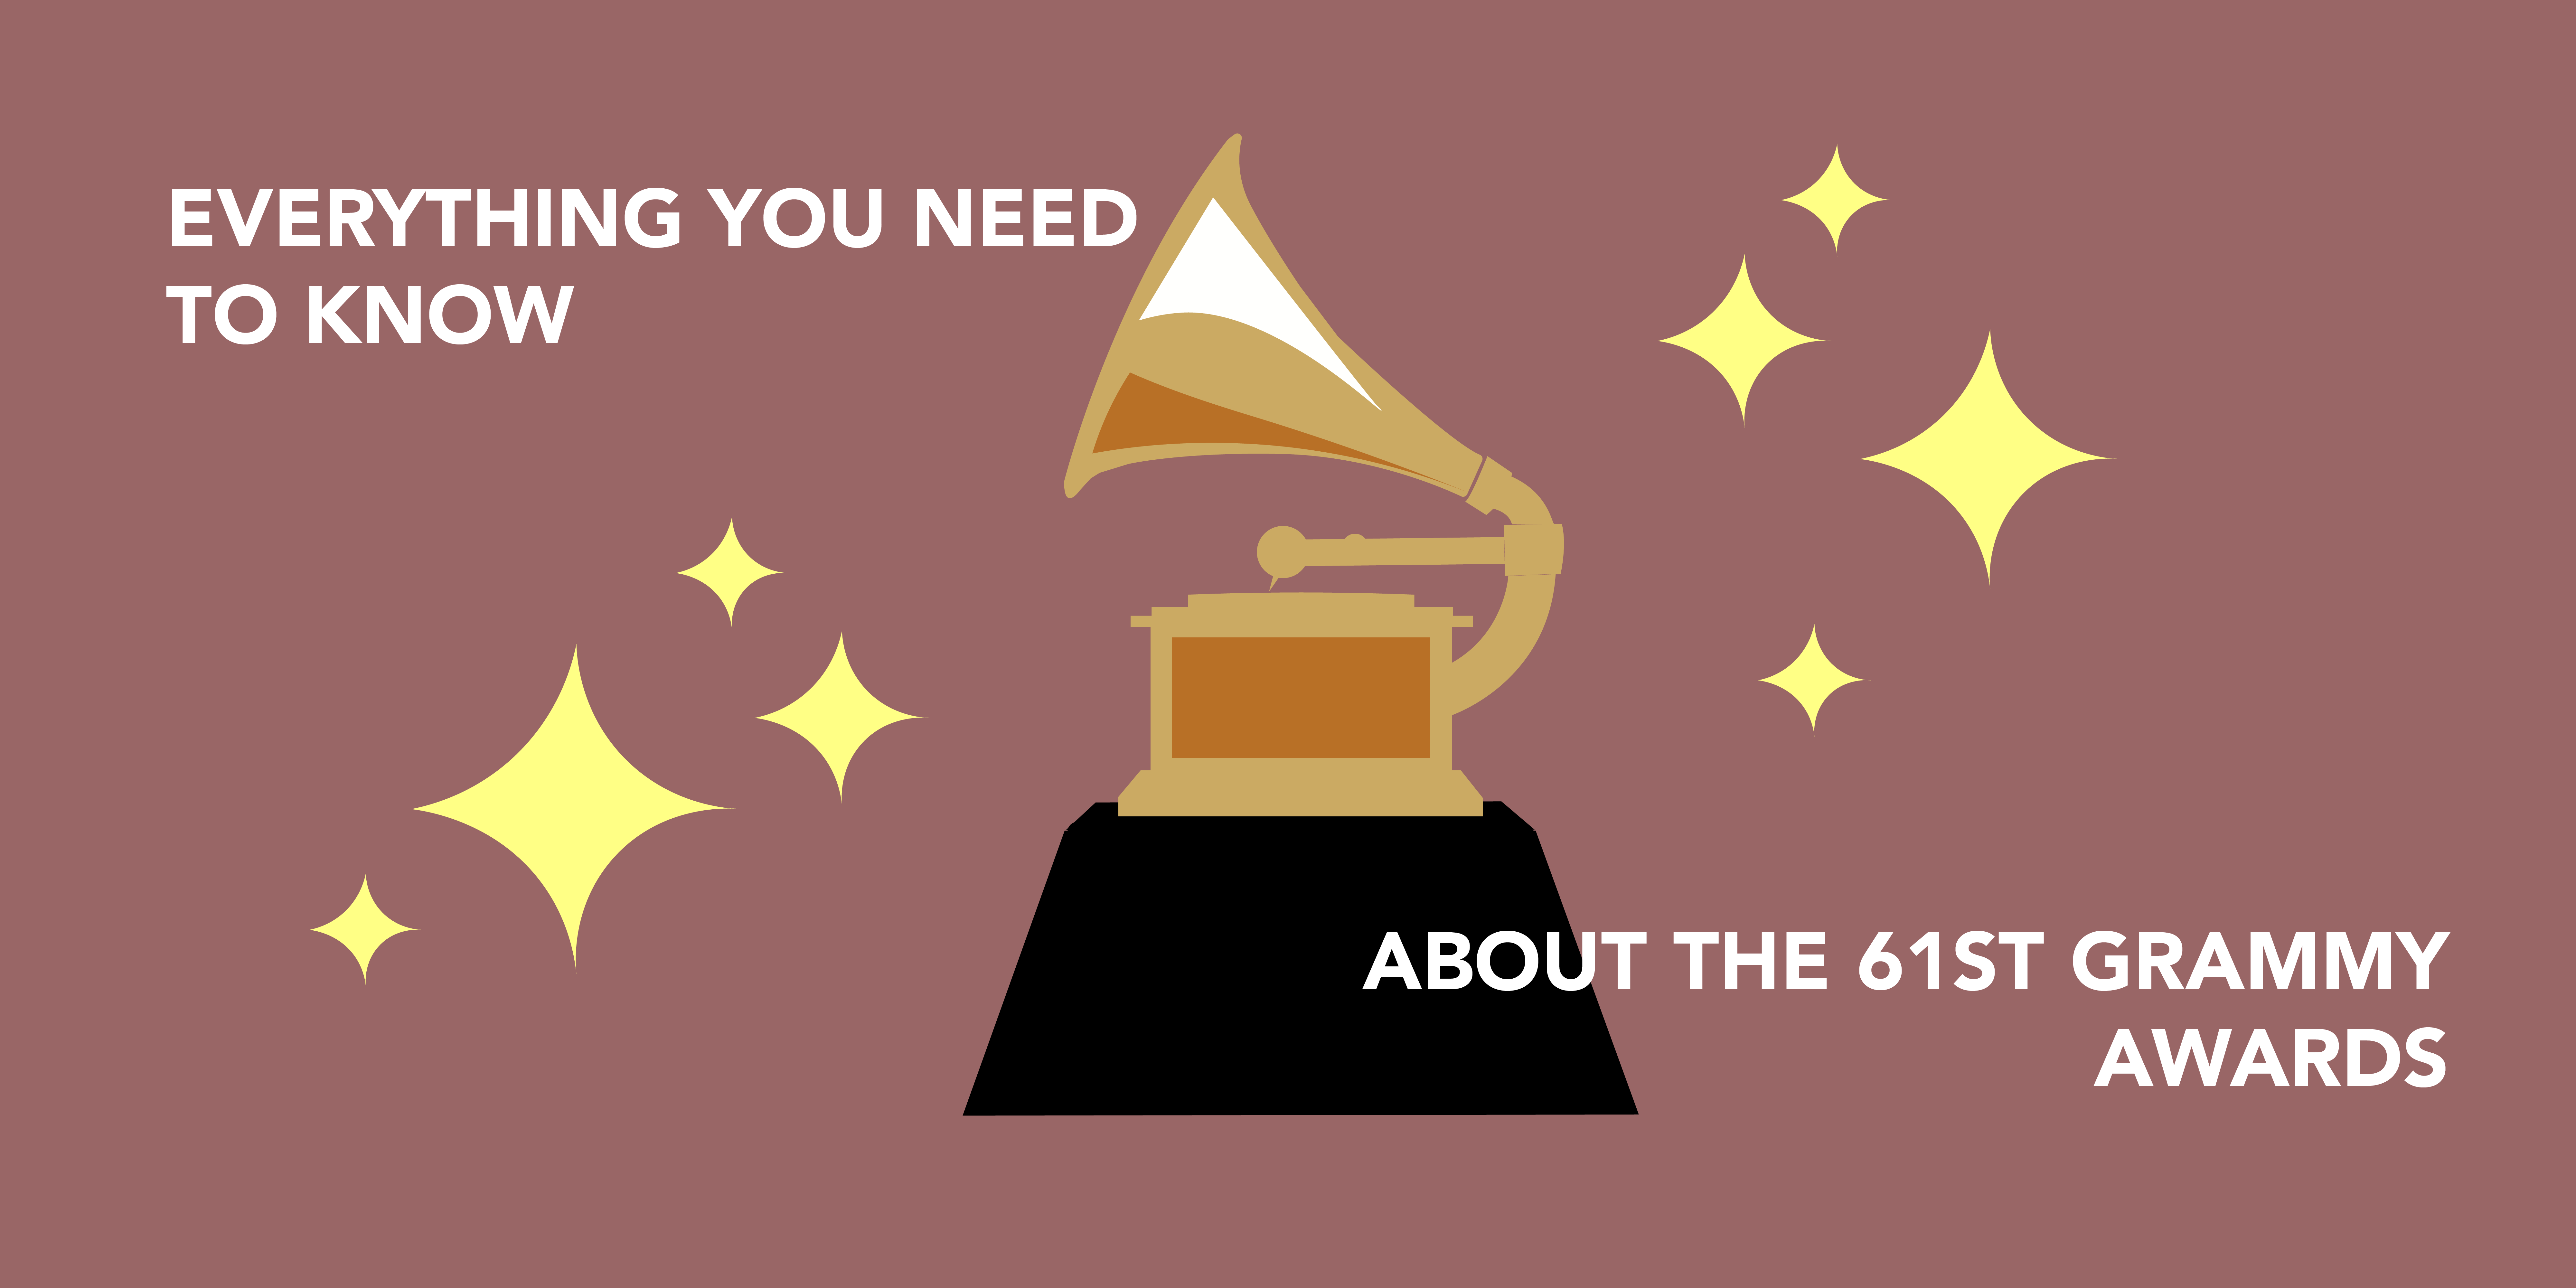 2e31e8b7 Everything you need to know about the 61st Grammy Awards | Editorial